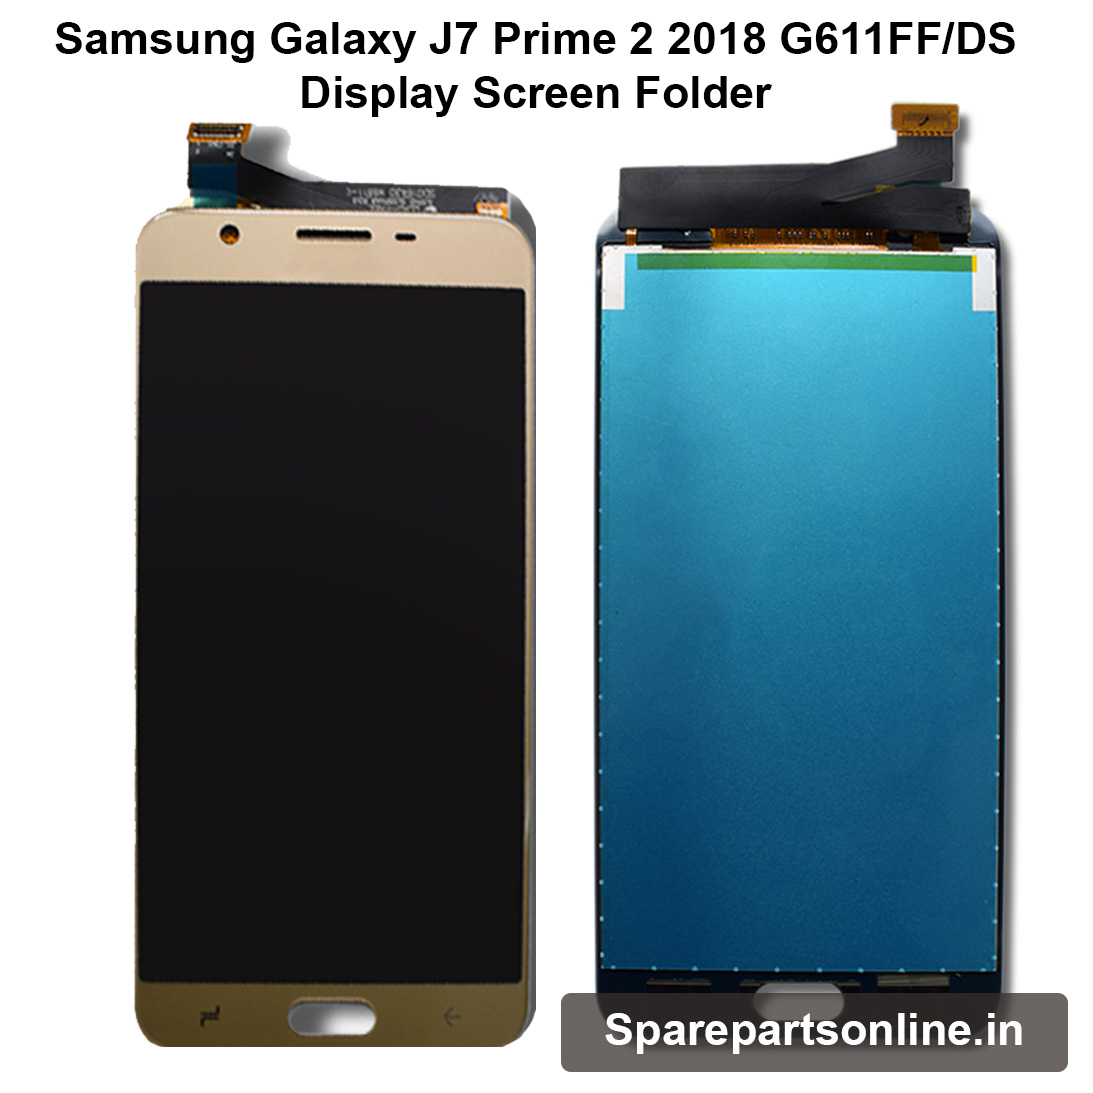 Samsung Galaxy J7 Prime 2 2018 G611FF Gold Display Lcd Screen Folder with  Touch Digitizer Combo